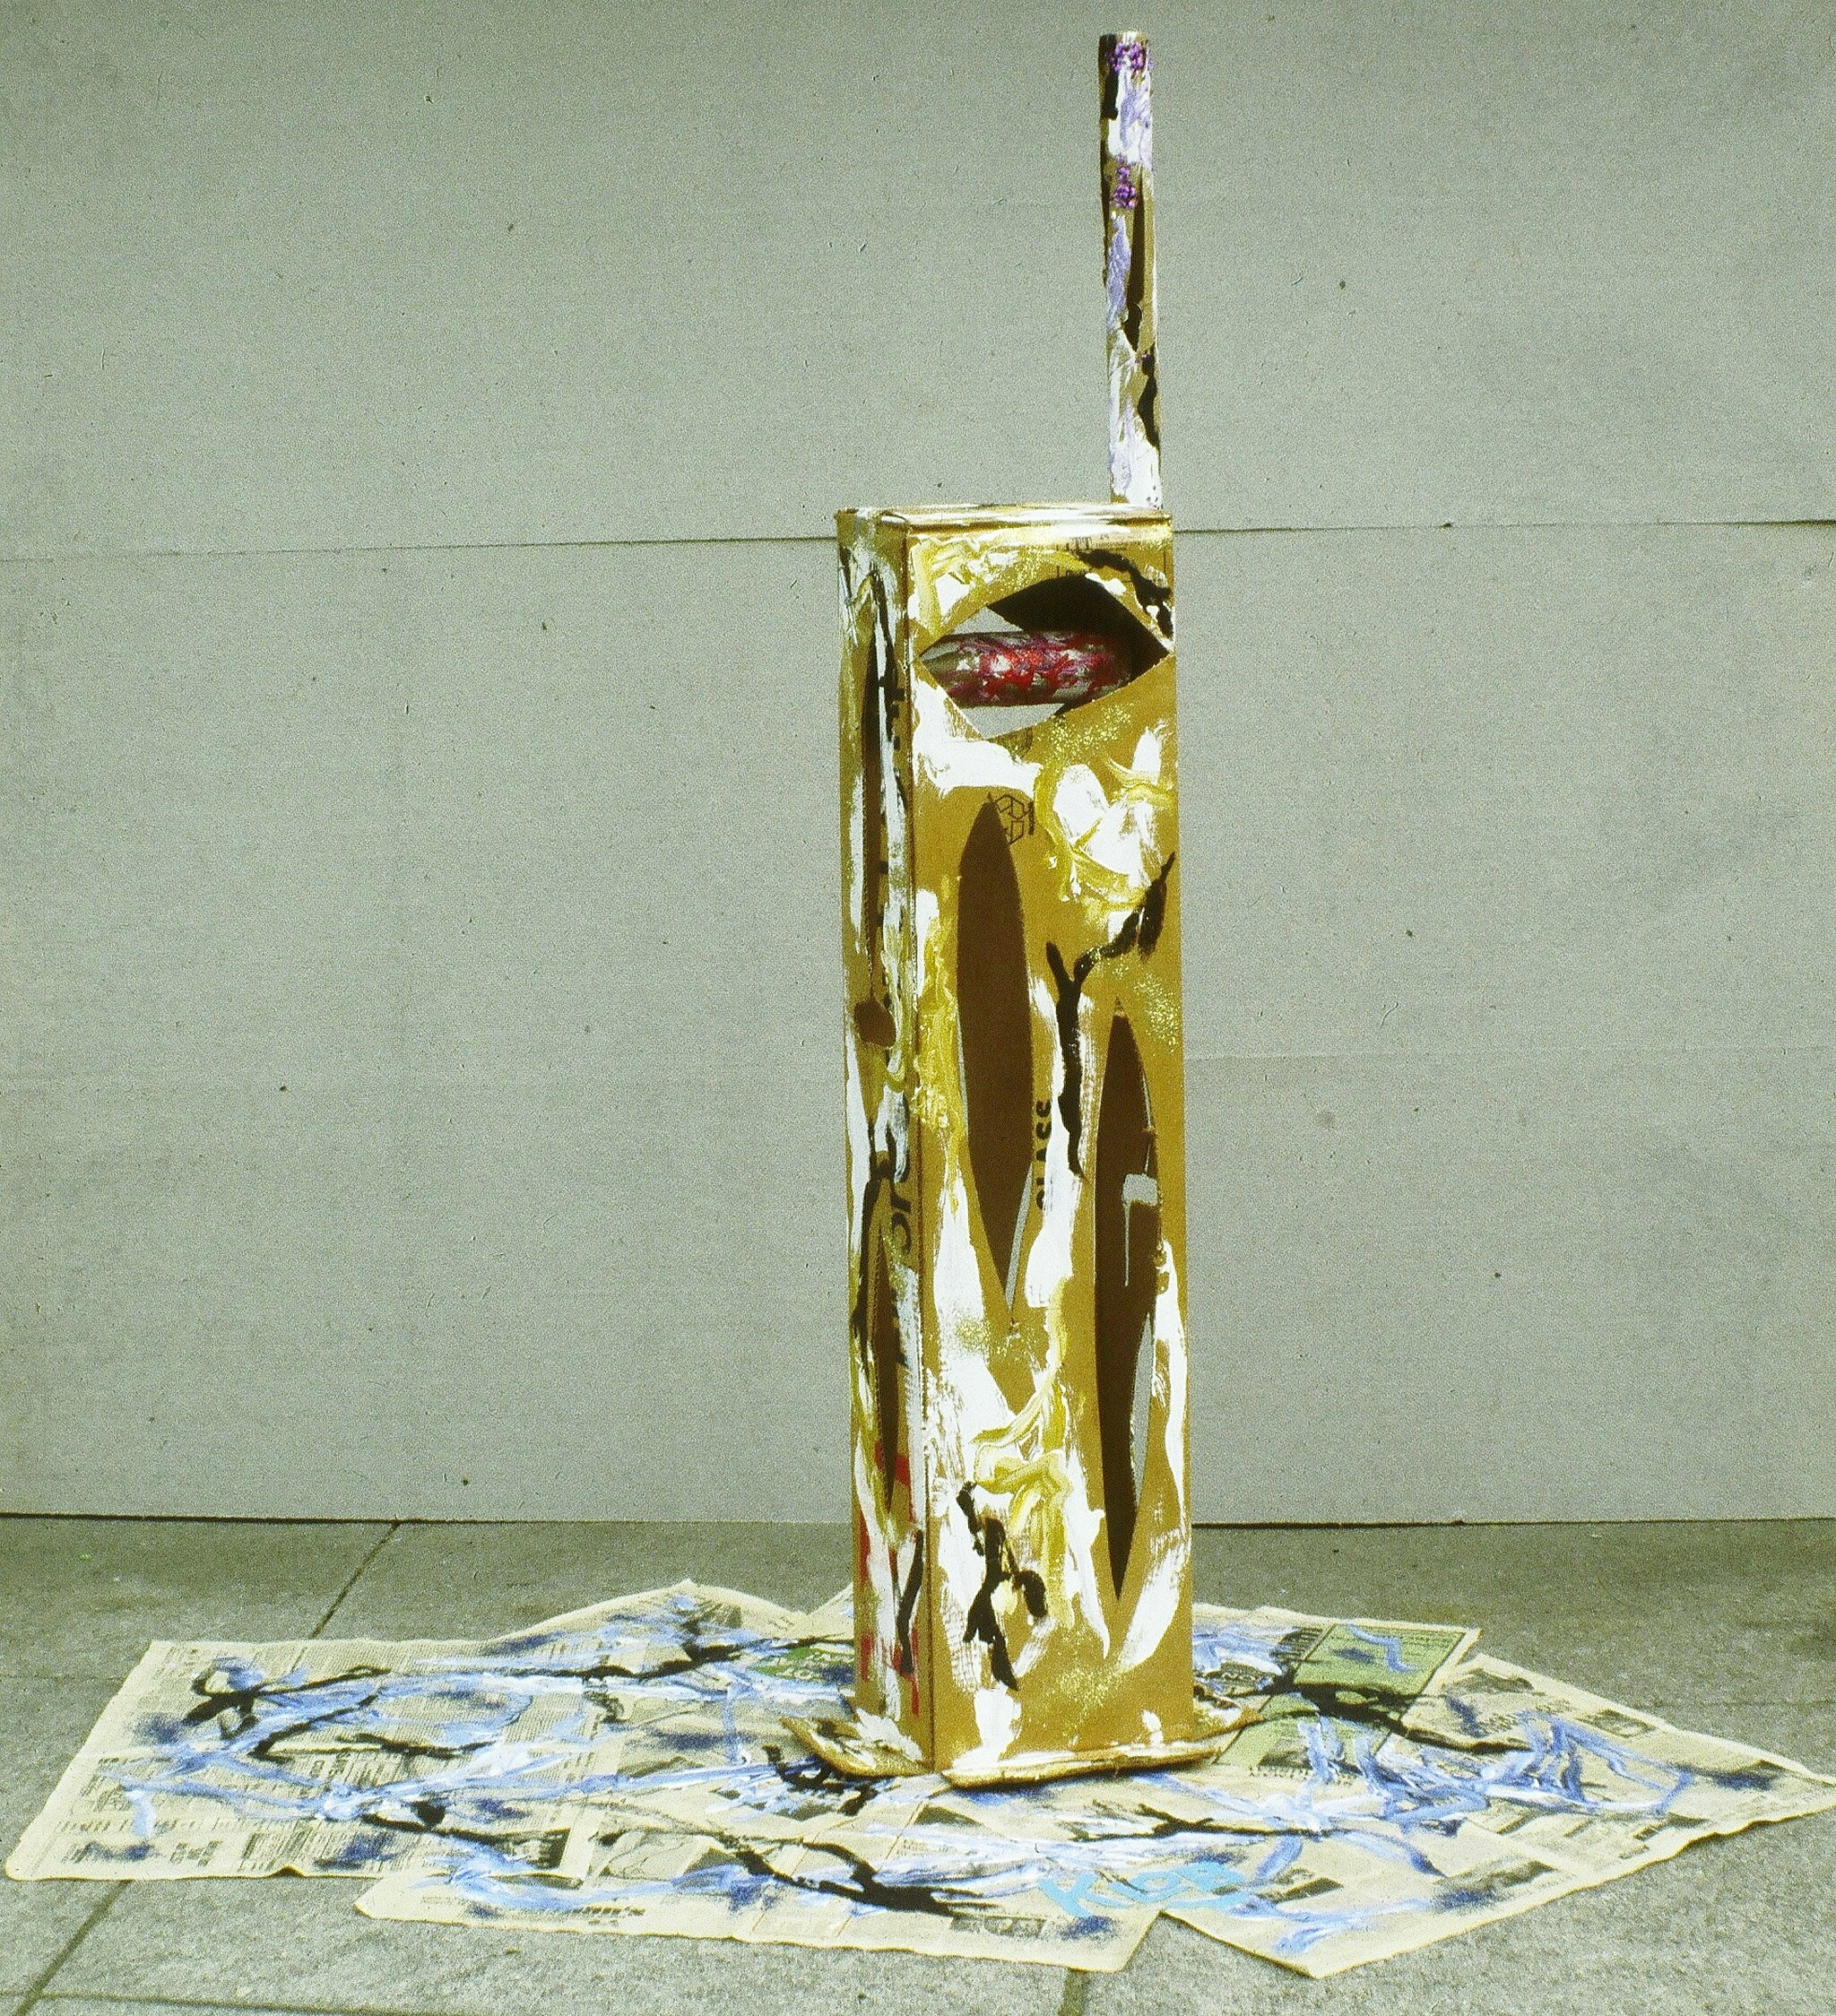 1979; acrylic, newspaper, cardboard box, cardboard tube; 5 ft 6 in X 6 ft 2 in